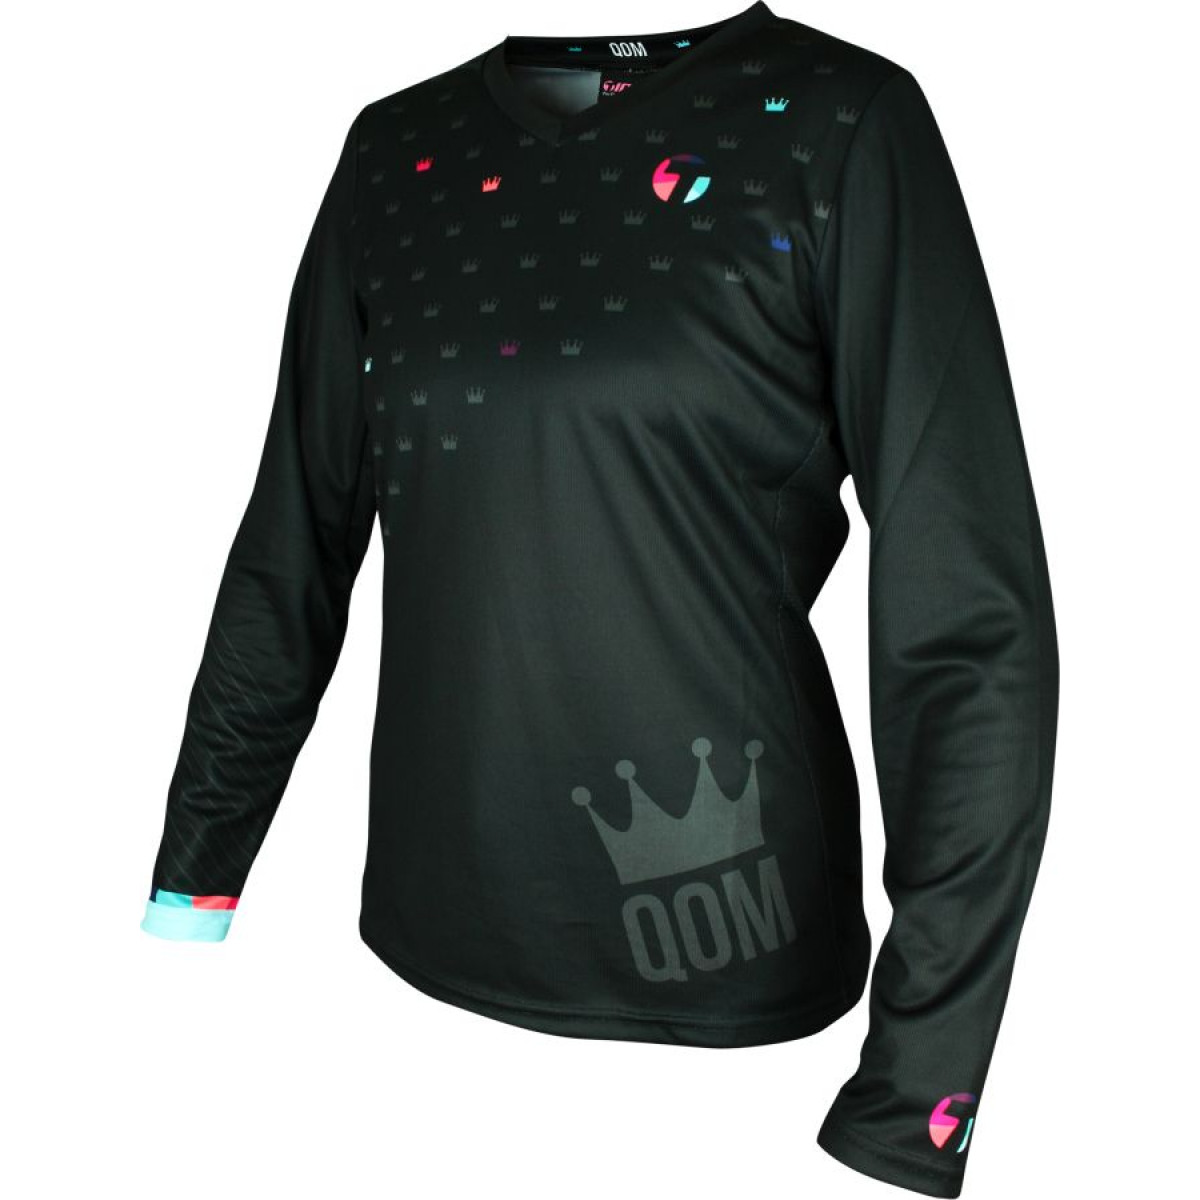 469 QOM ls trail jersey Women's QOM Long Sleeve Trail Jersey